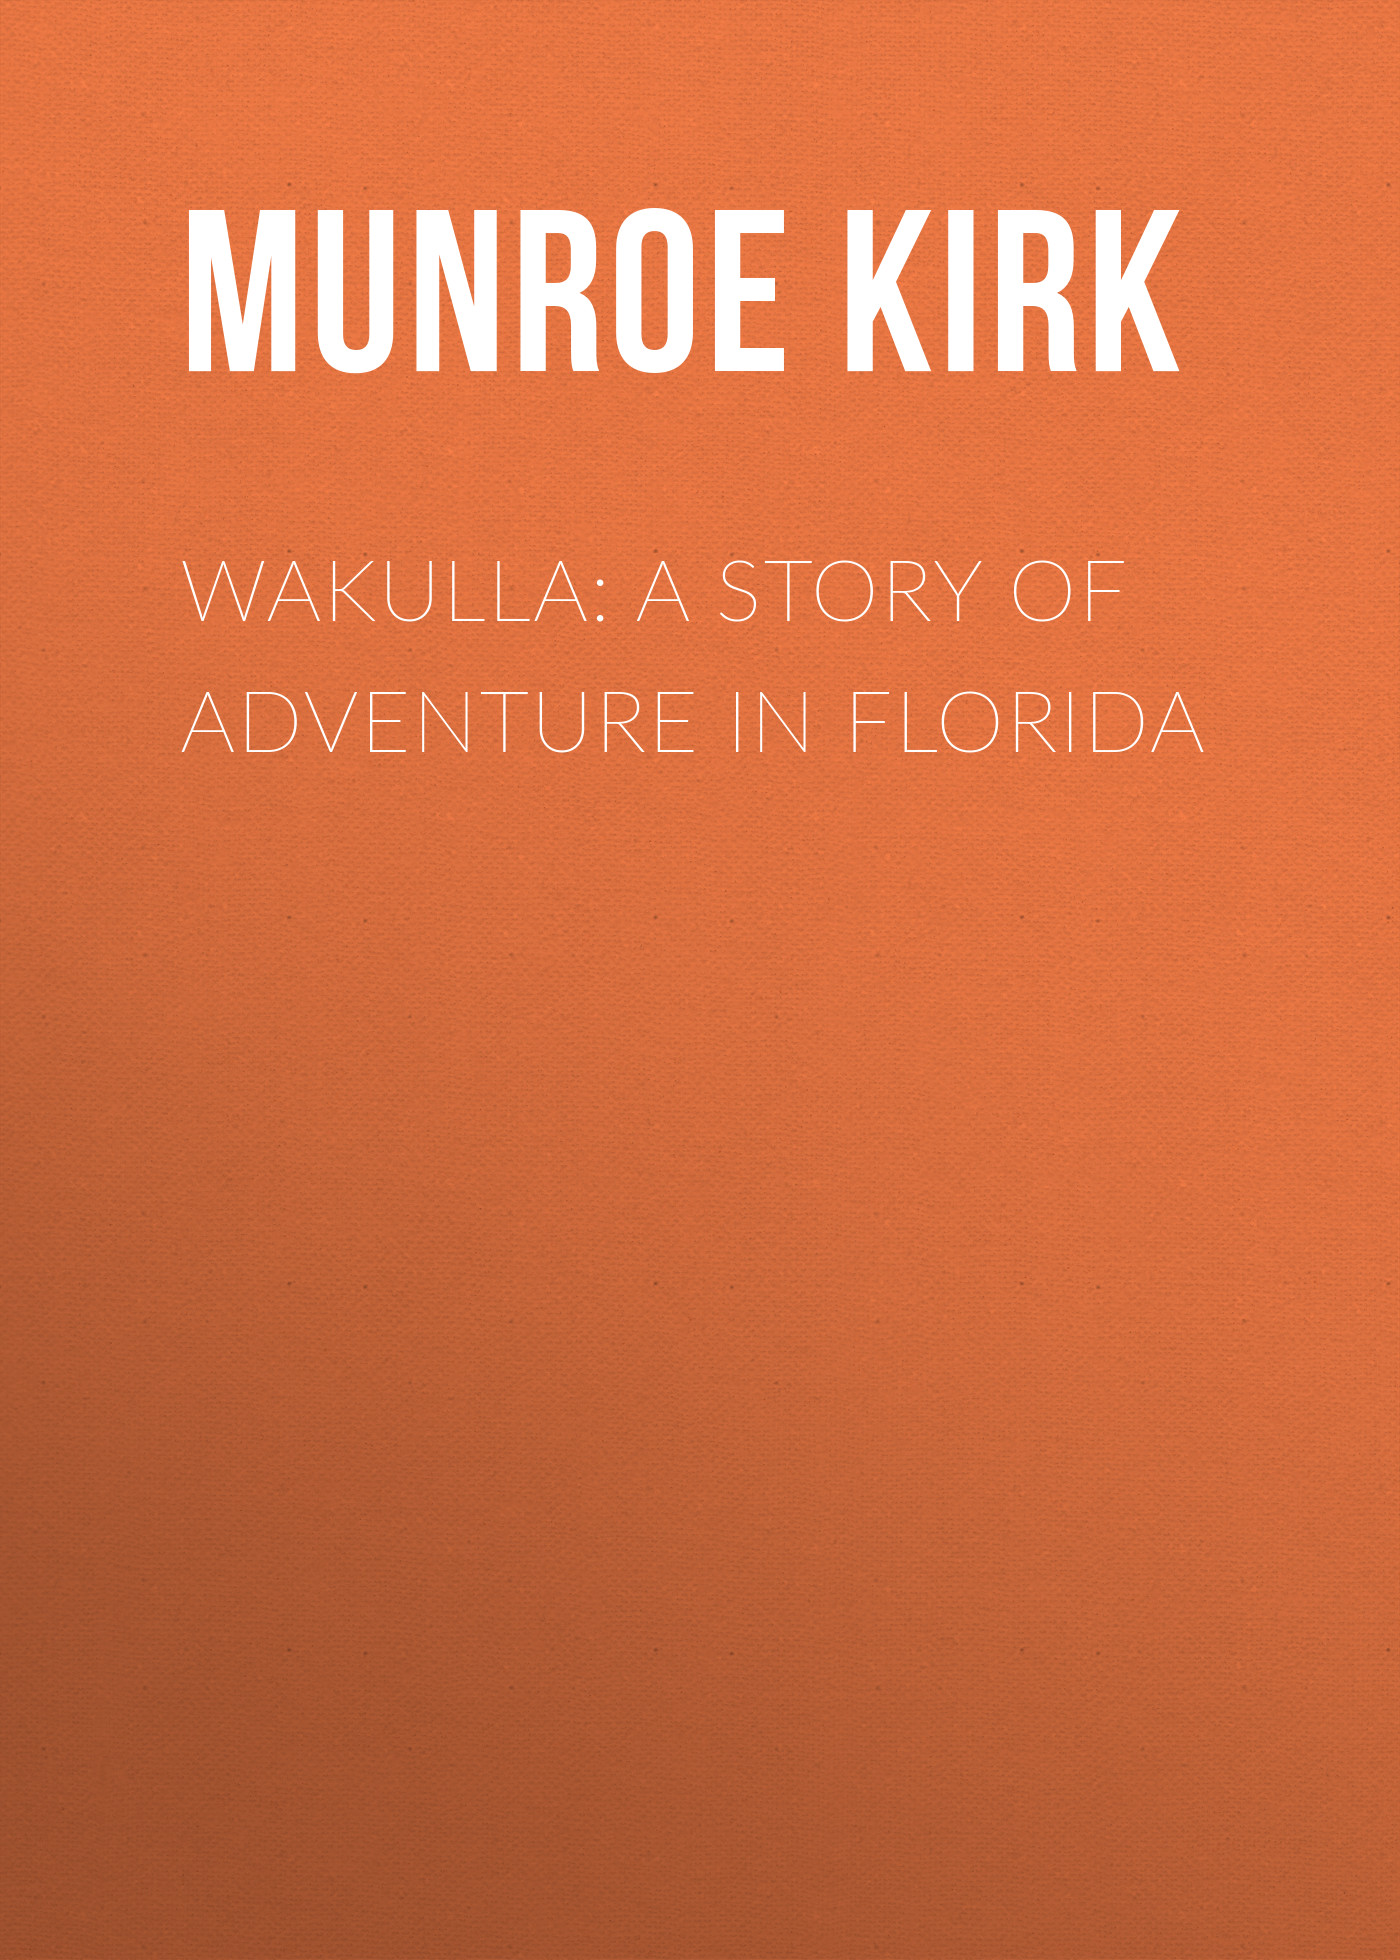 Munroe Kirk Wakulla: a story of adventure in Florida